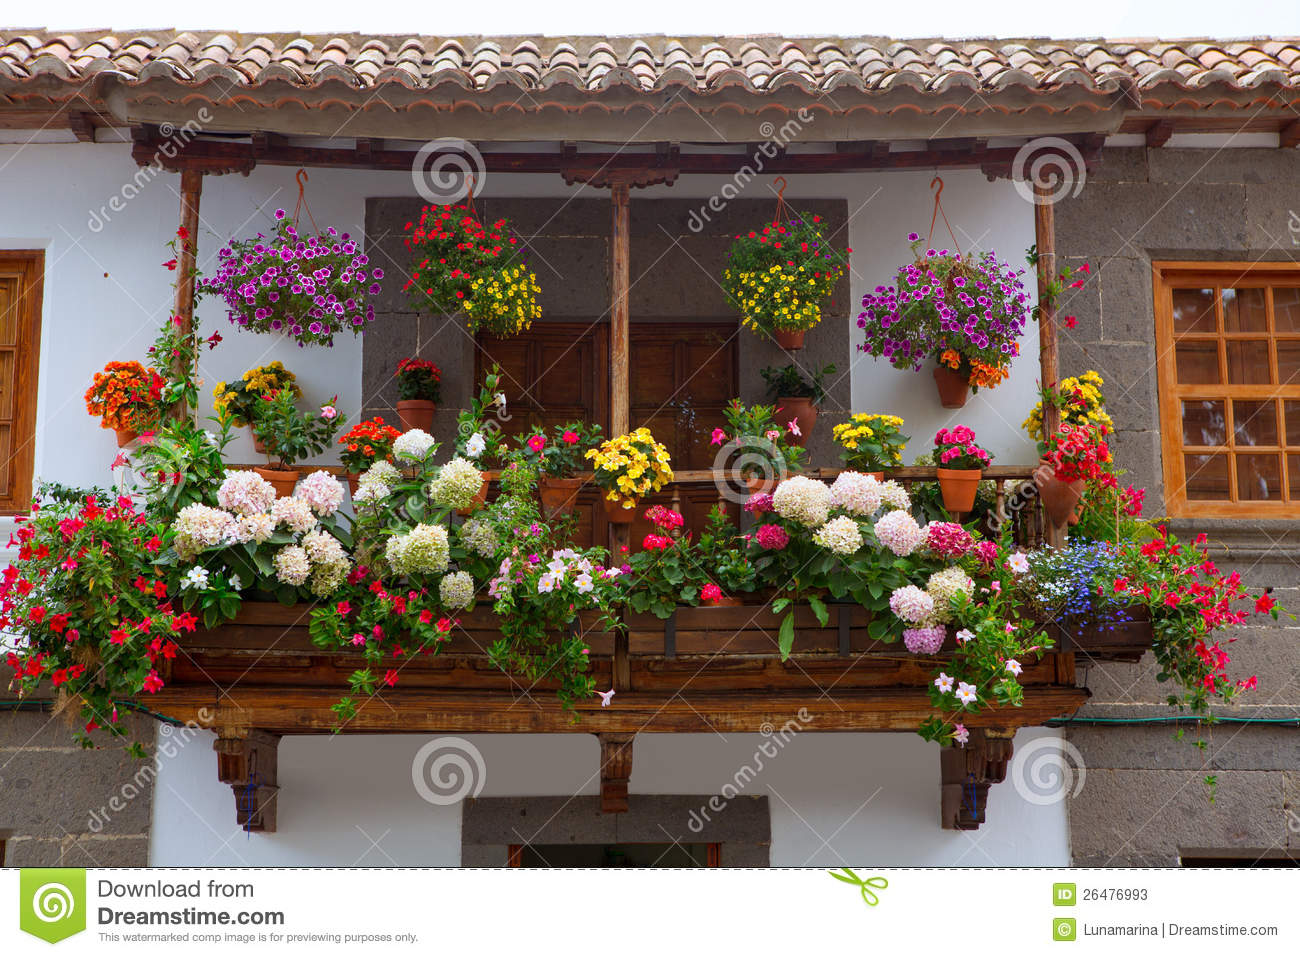 gran canaria teror flower pot balcony stock image image of canary colonial 26476993. Black Bedroom Furniture Sets. Home Design Ideas